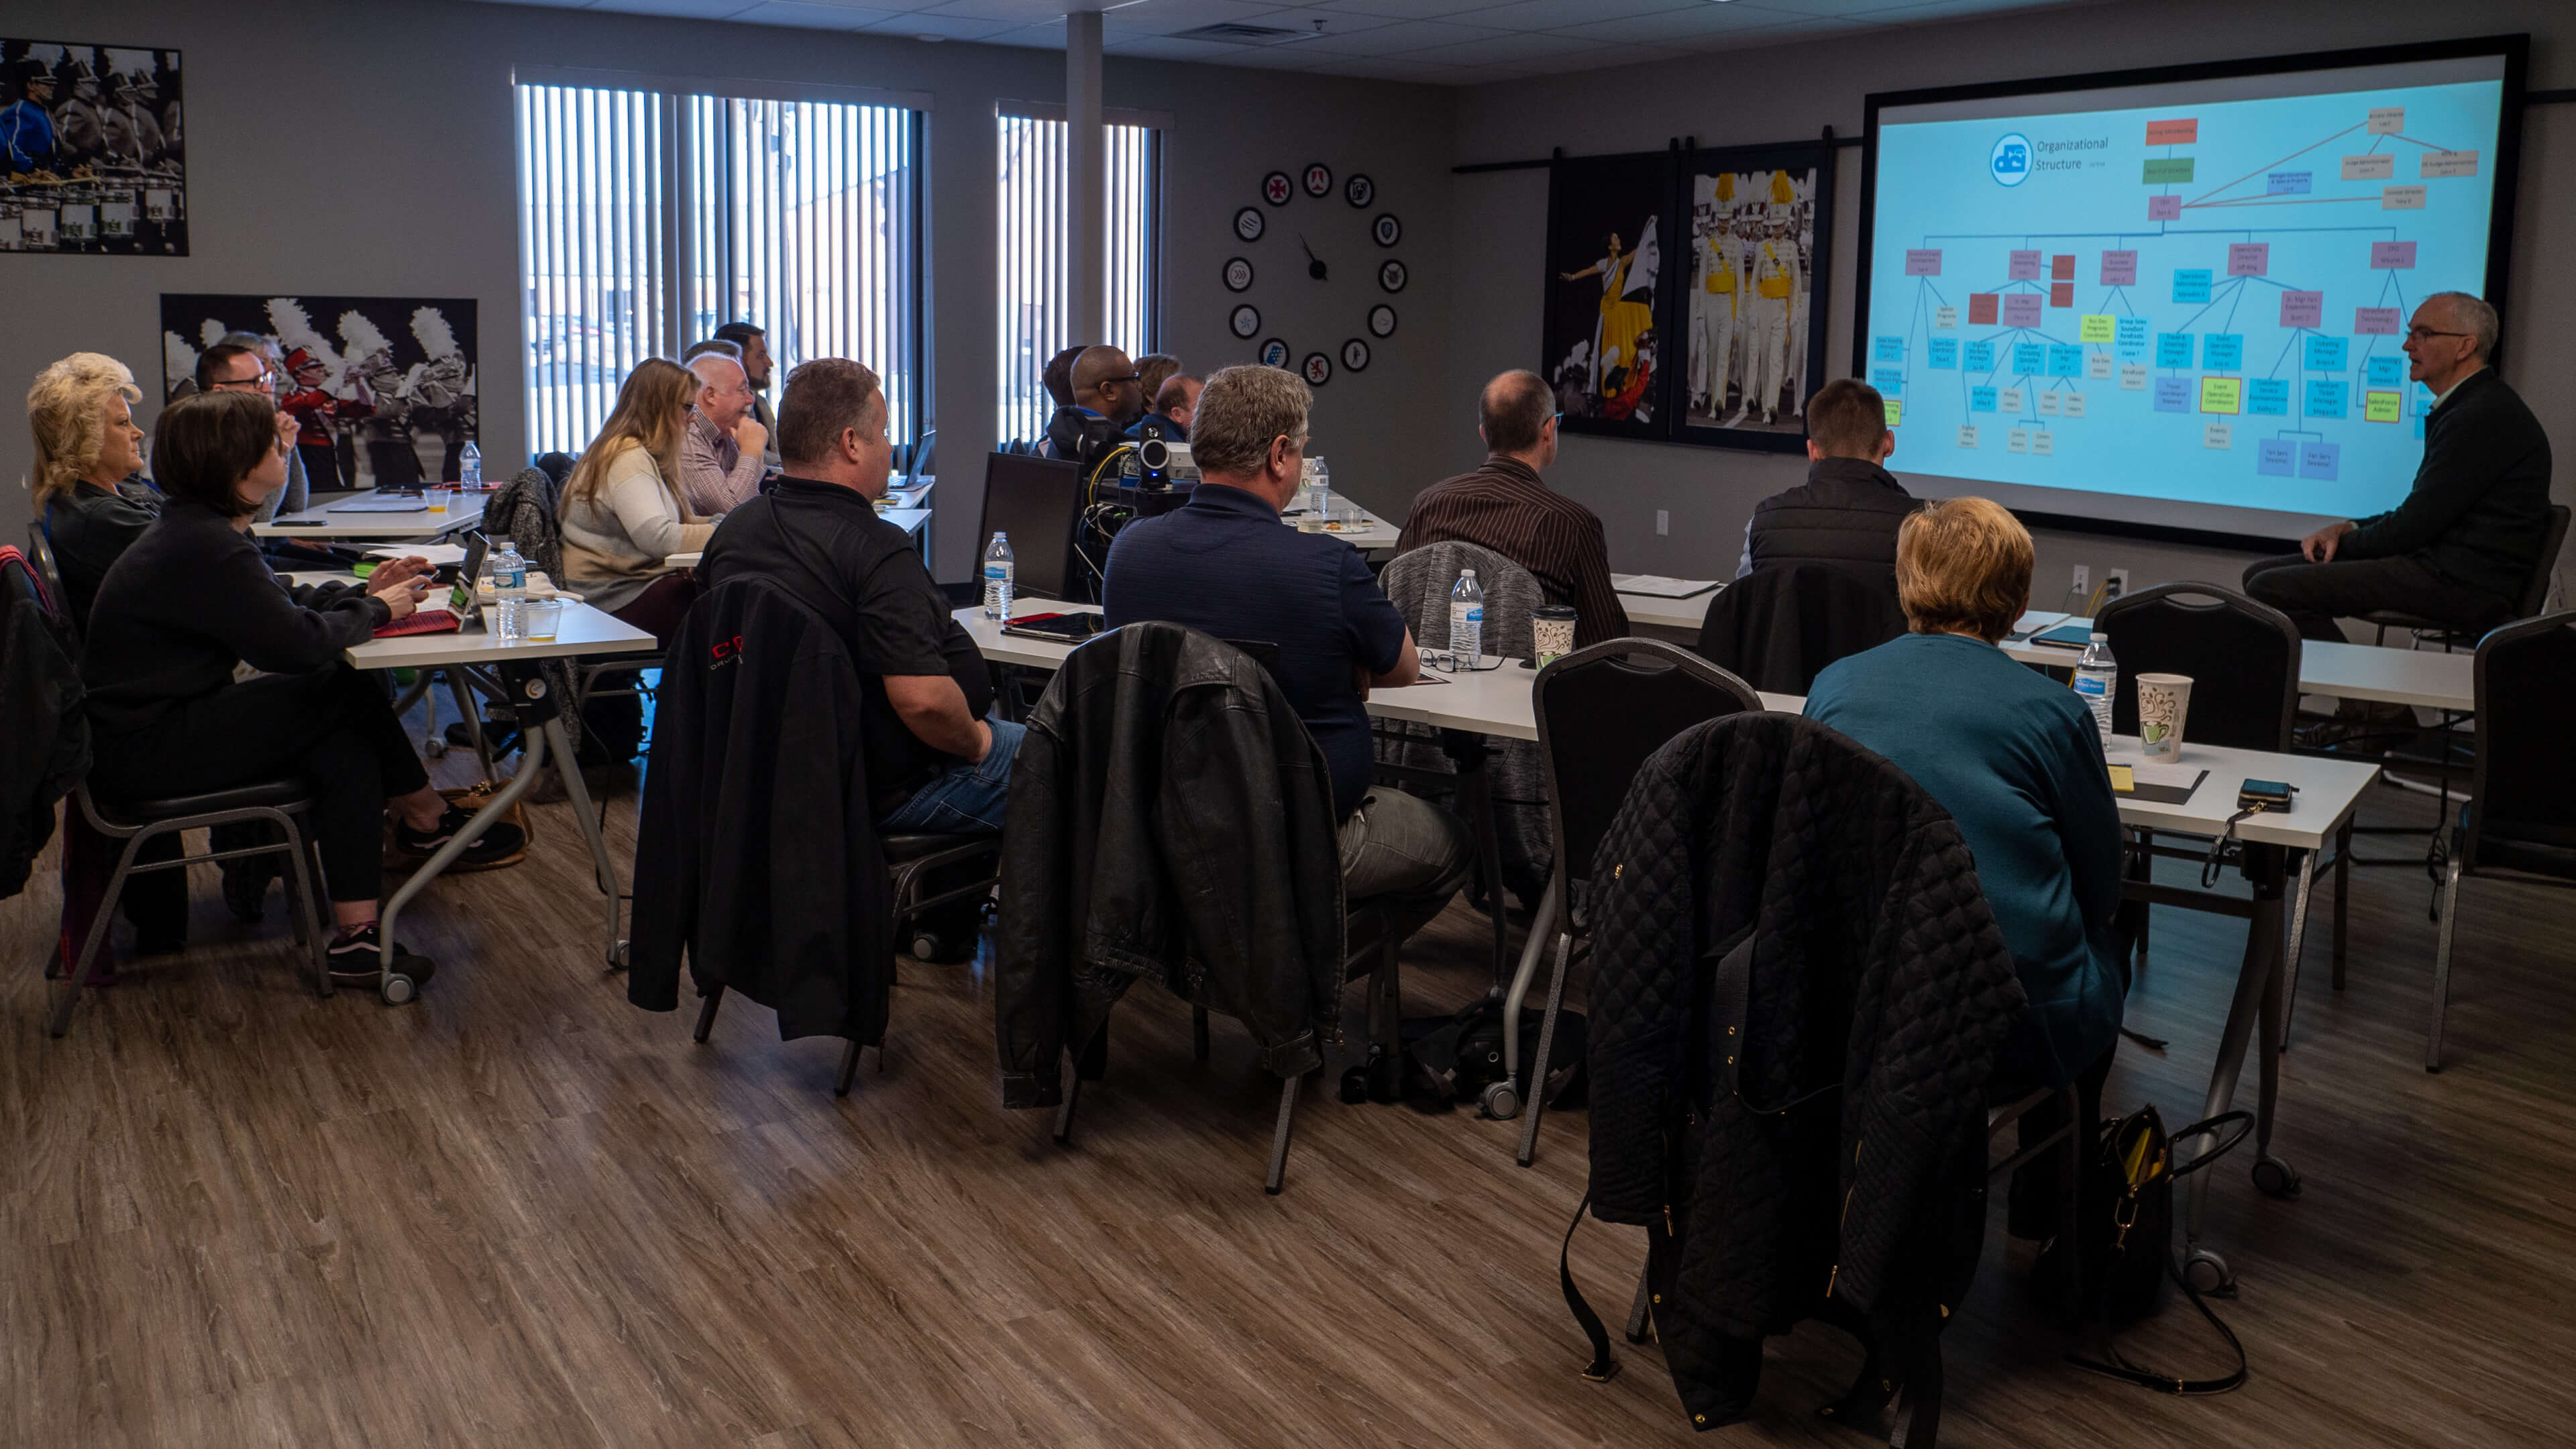 New directors gain insights, get acclimated with pre-meeting briefing sessions